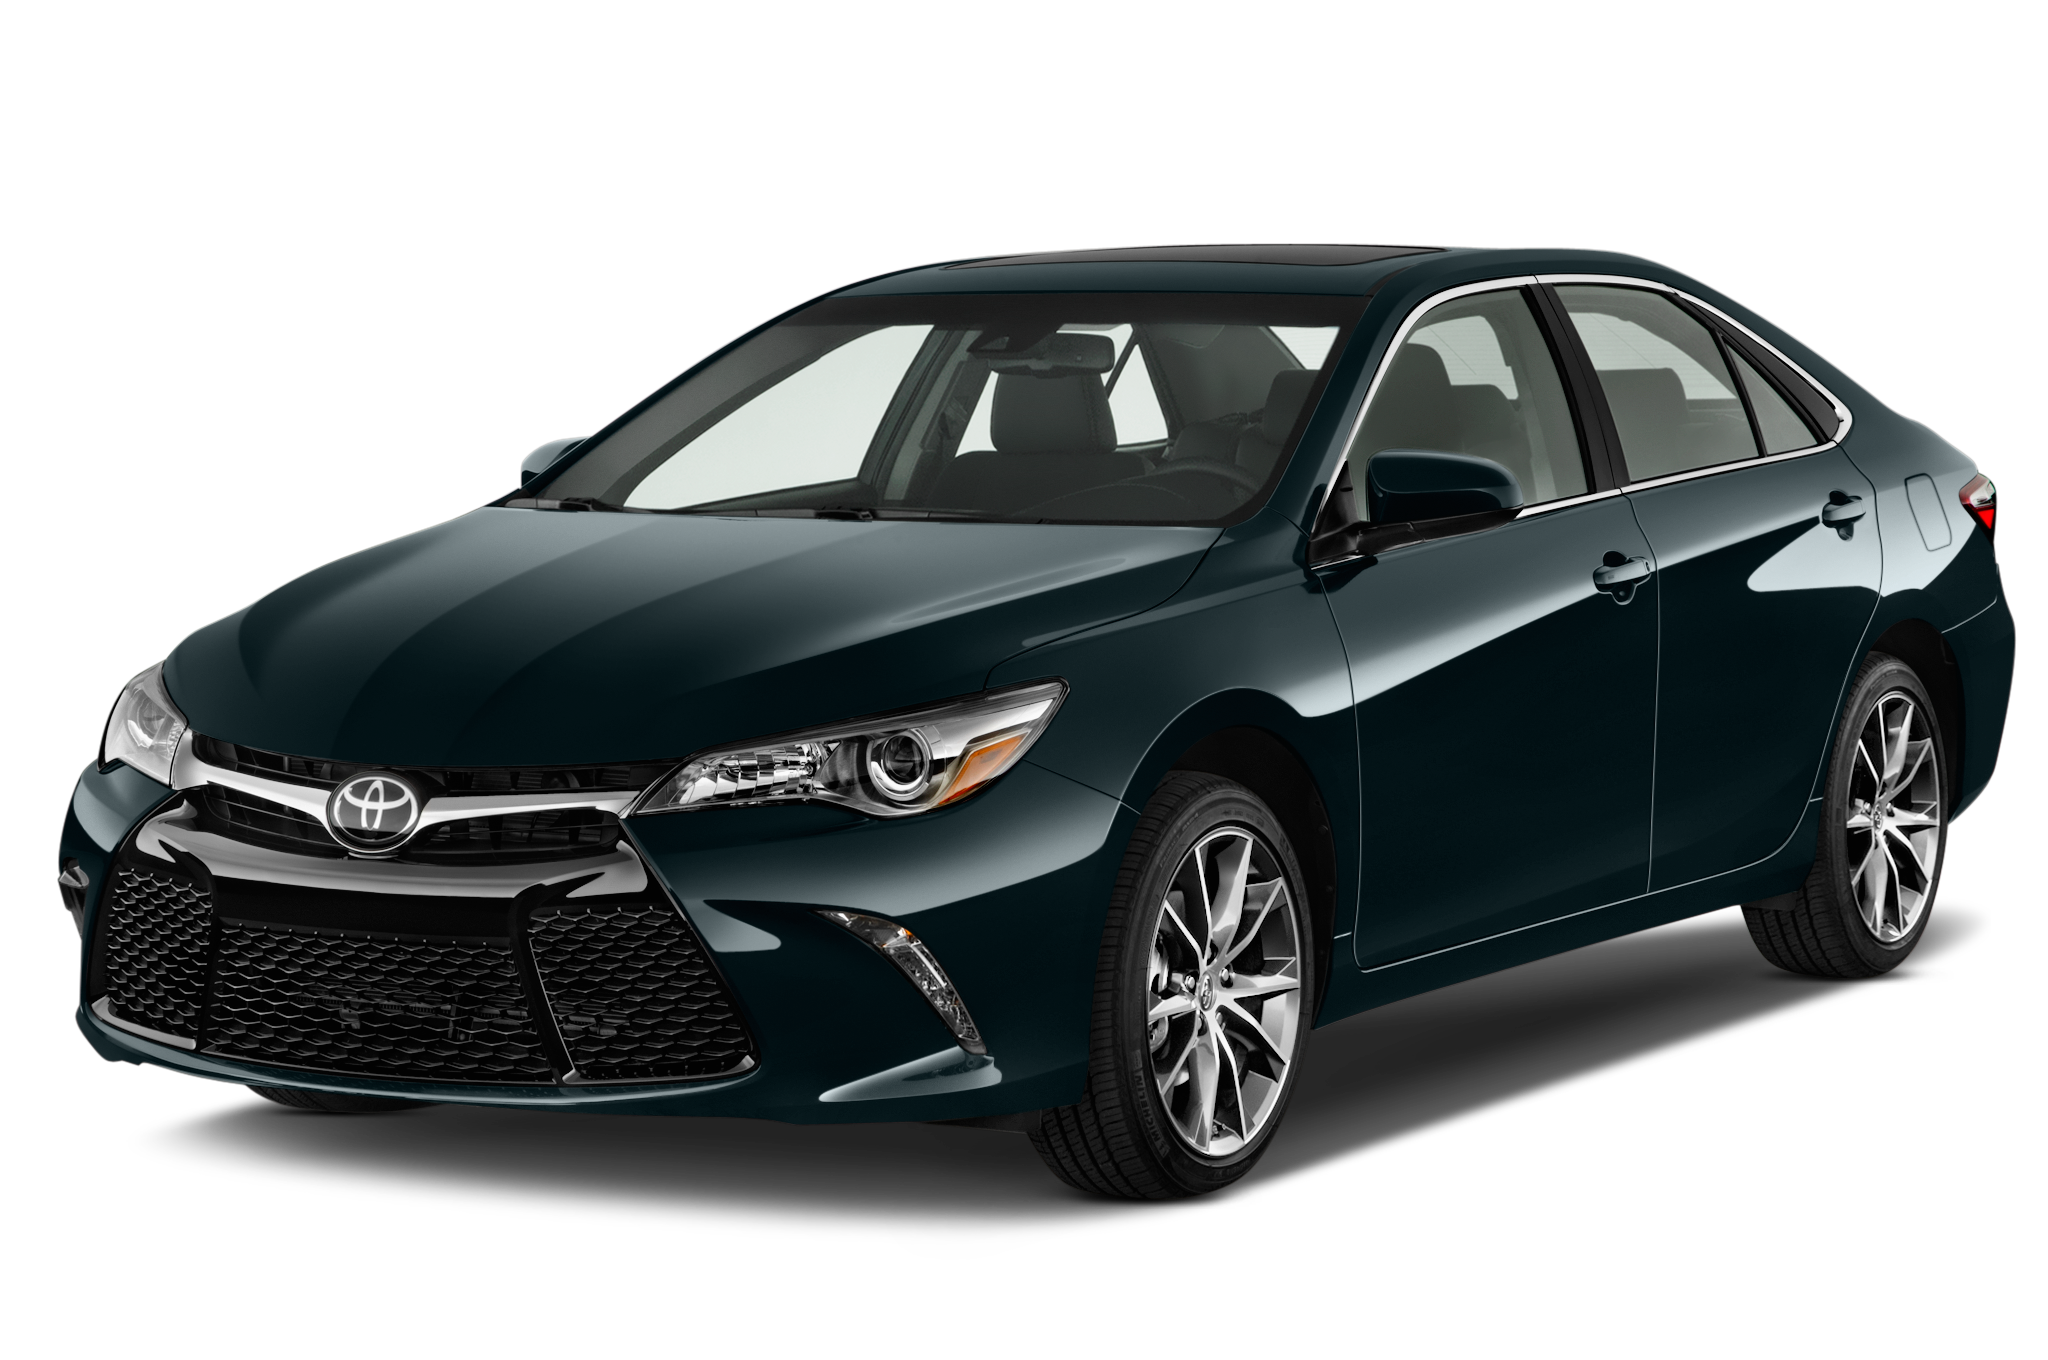 2015 toyota avalon gains 2500 car touring sport edition. Black Bedroom Furniture Sets. Home Design Ideas